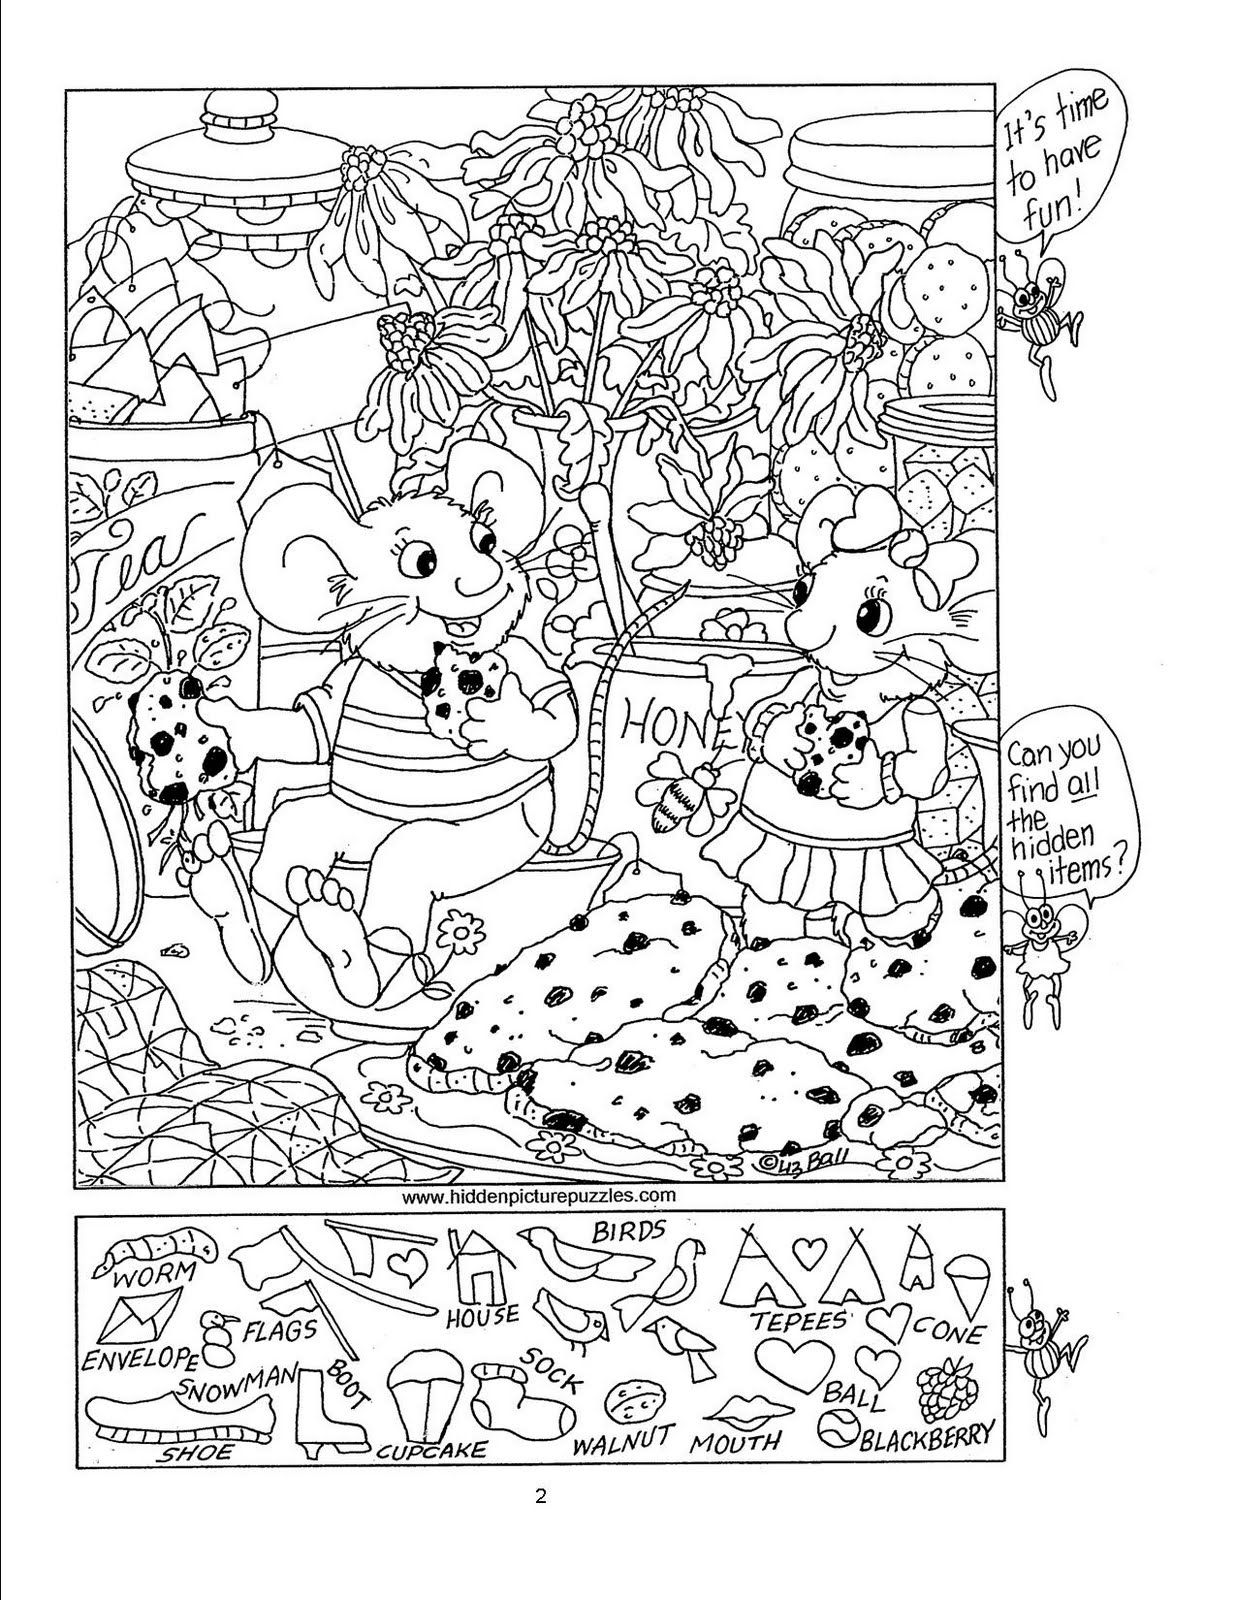 85 free hidden picture puzzles for kids